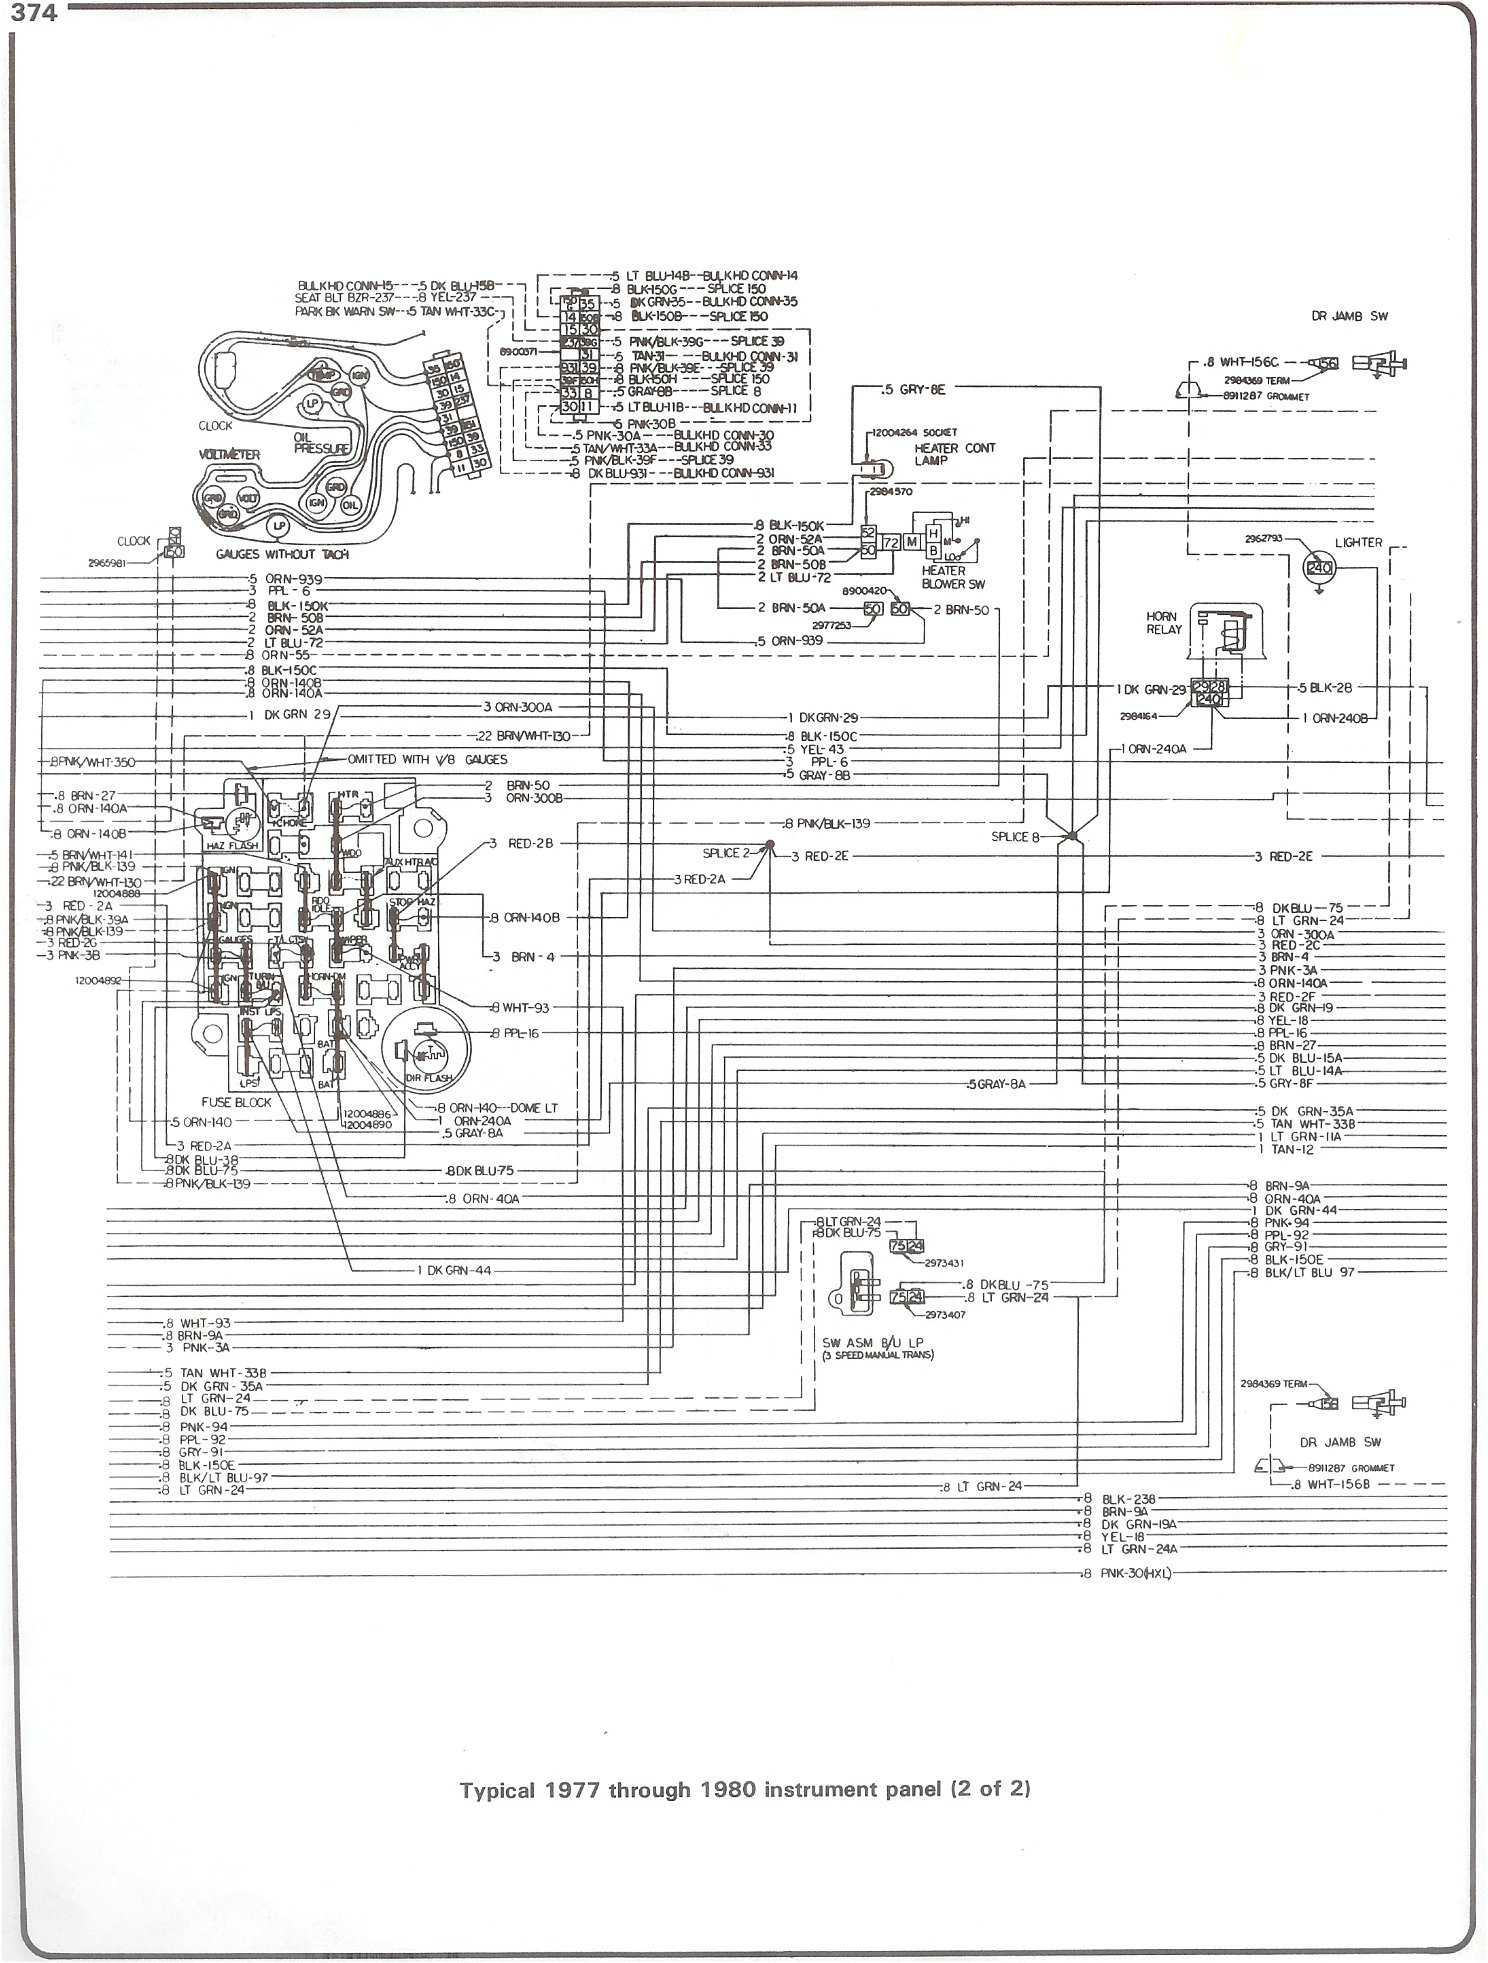 1986 chevrolet k10 wiring diagram wiring diagrams and schematics 2006 toyota ry 2 4l fi dohc 4cyl repair s wiring